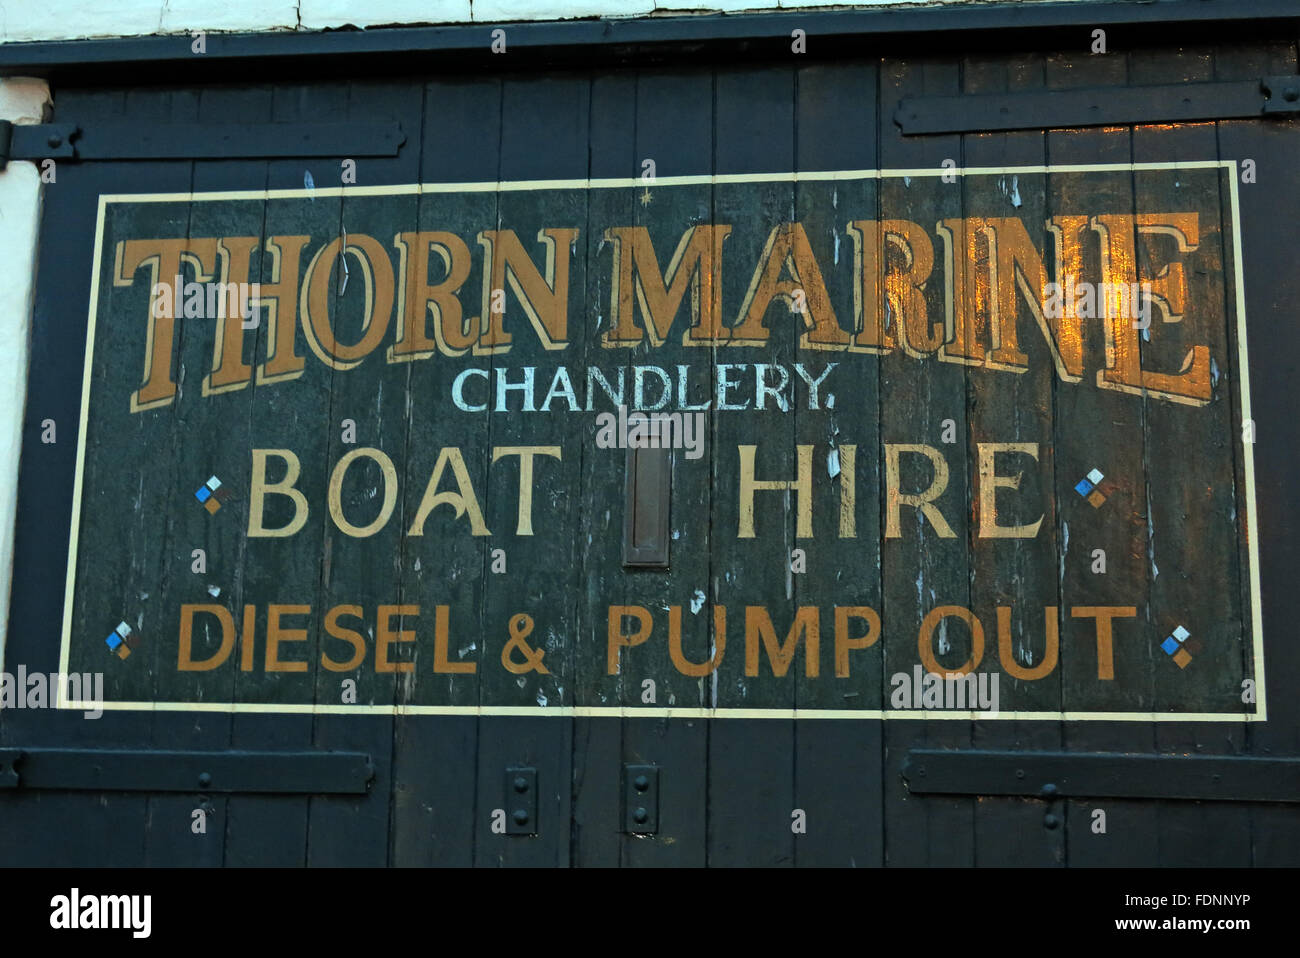 Thorn Marine Chandlery,Stockton Heath,Warrington,Cheshire,England,UK - Stock Image